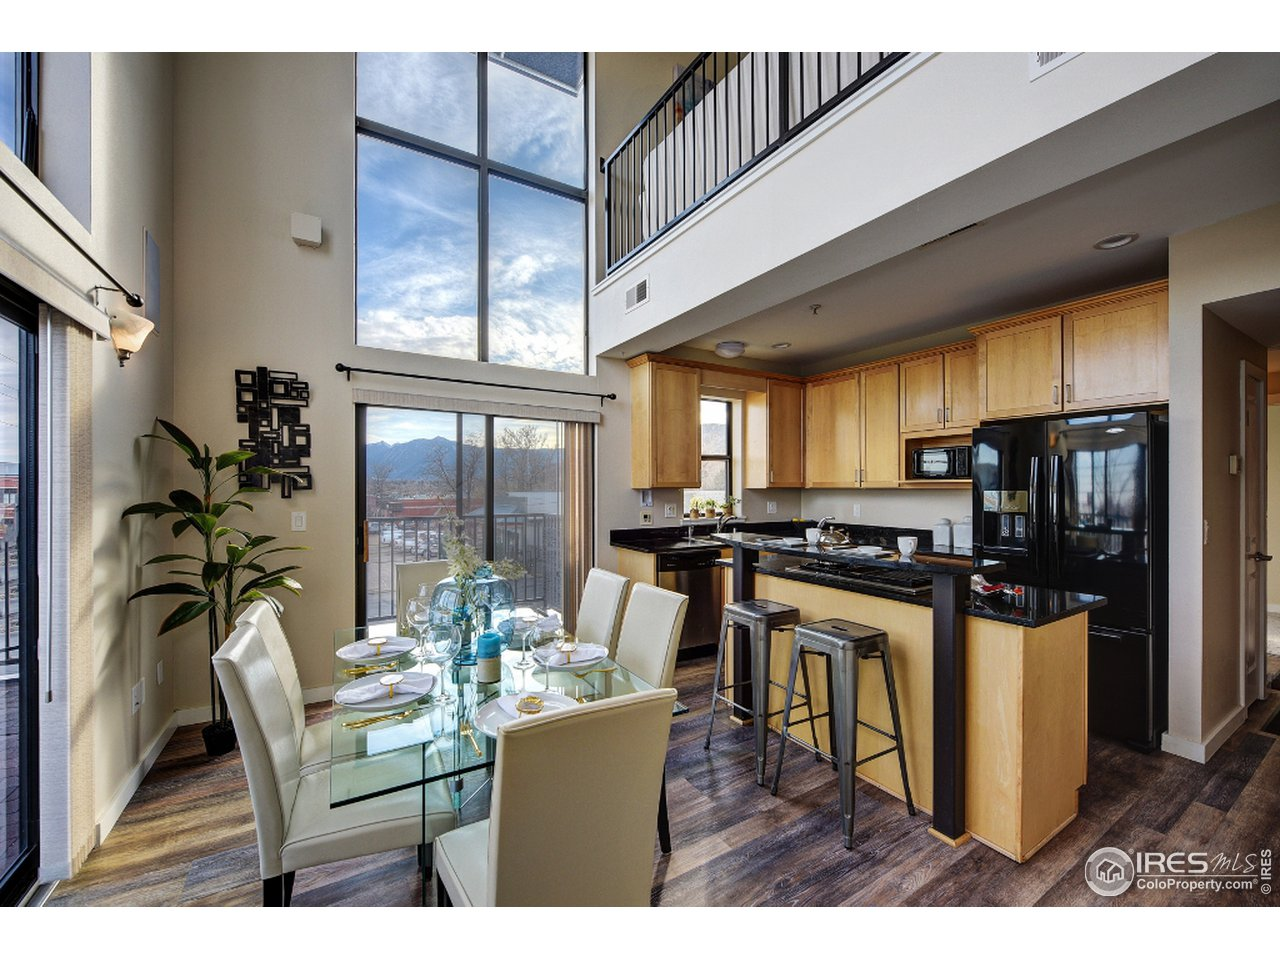 Dining area with floor to ceiling windows